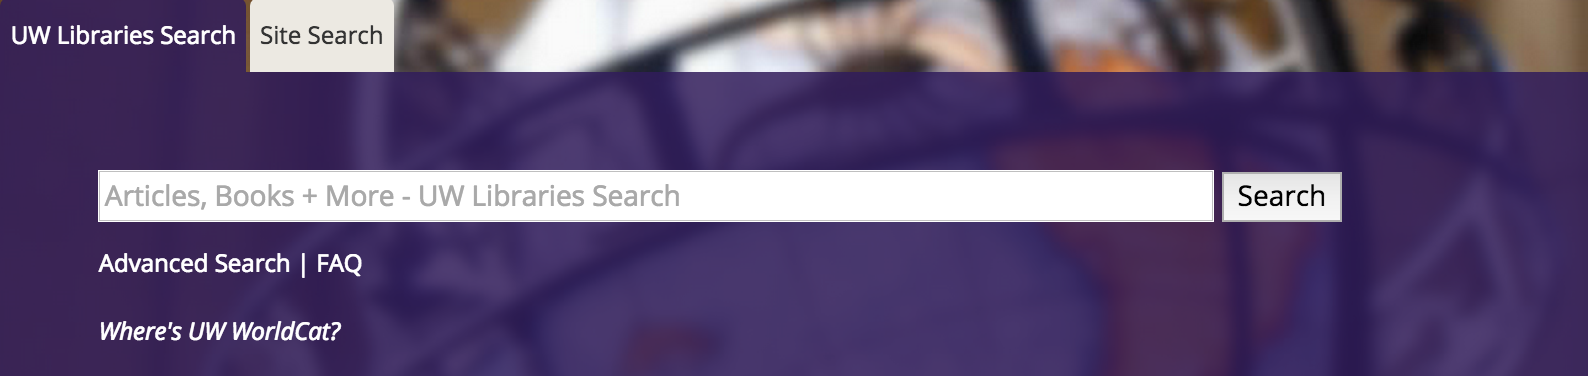 UW Libraries Search Box